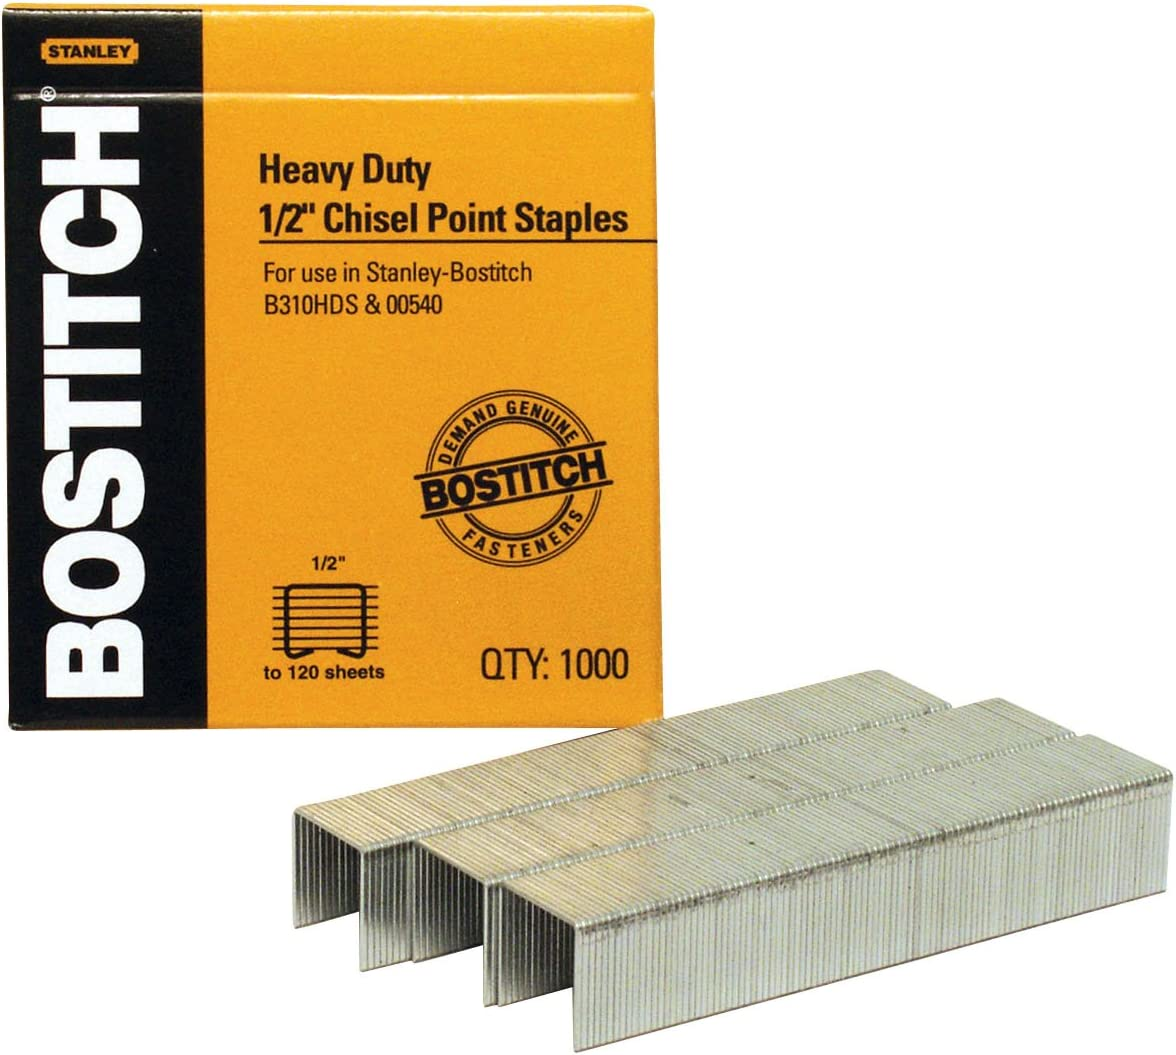 Bostitch Office SB351/2-1M Heavy Duty Premium Staples : General Purpose Staples : Office Products